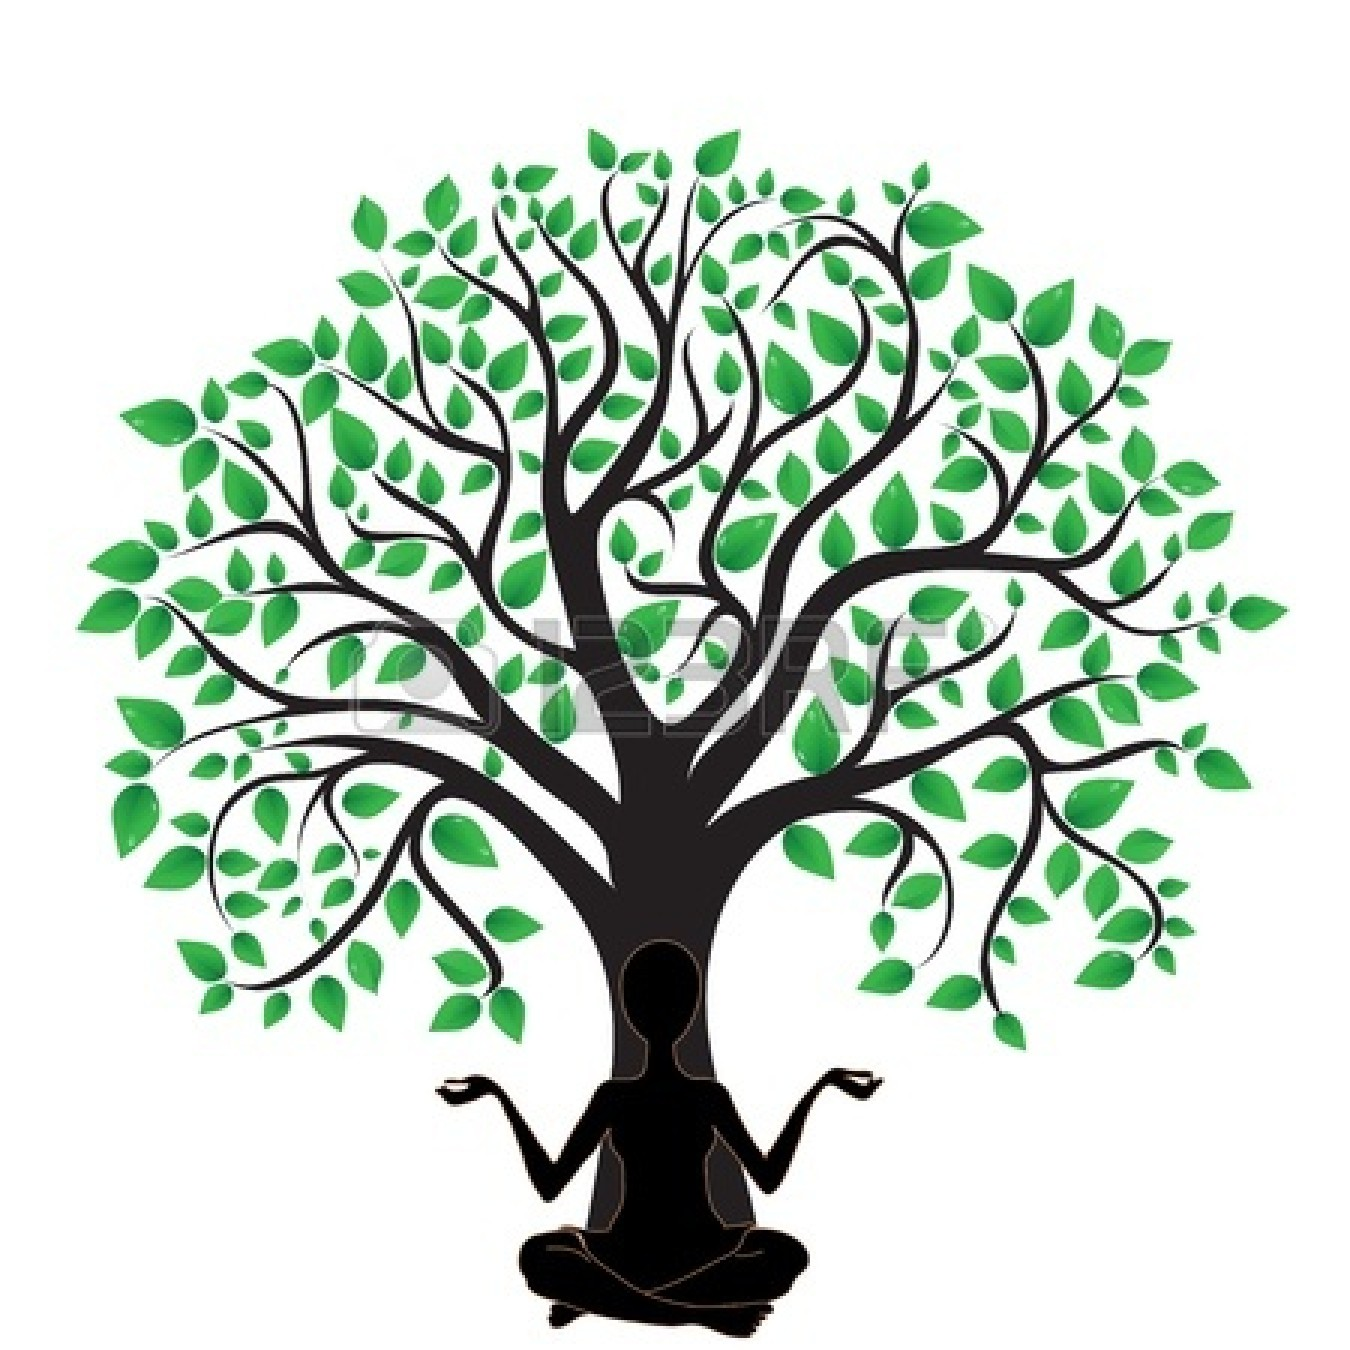 1350x1350 Oak Tree Silhouette Logo Free Clipart Images Image